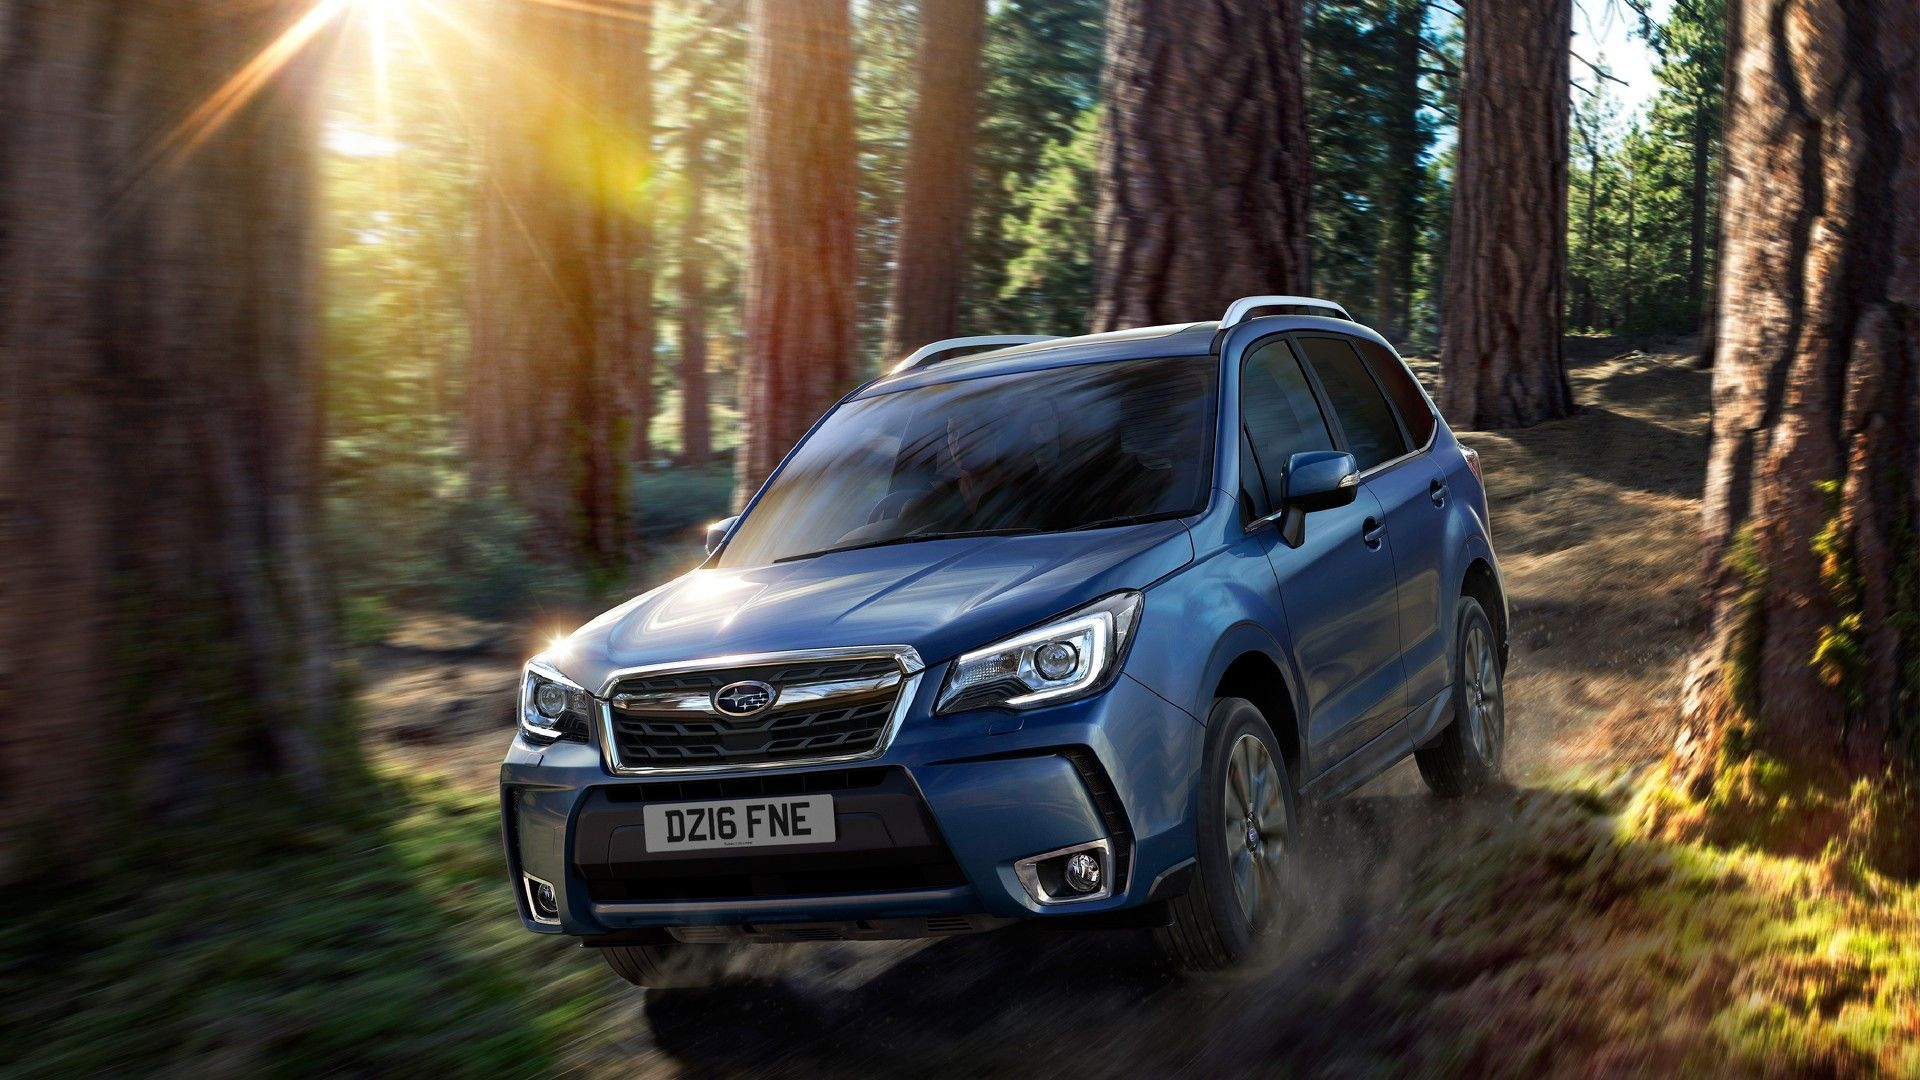 1920x1080 - Subaru Forester Wallpapers 16